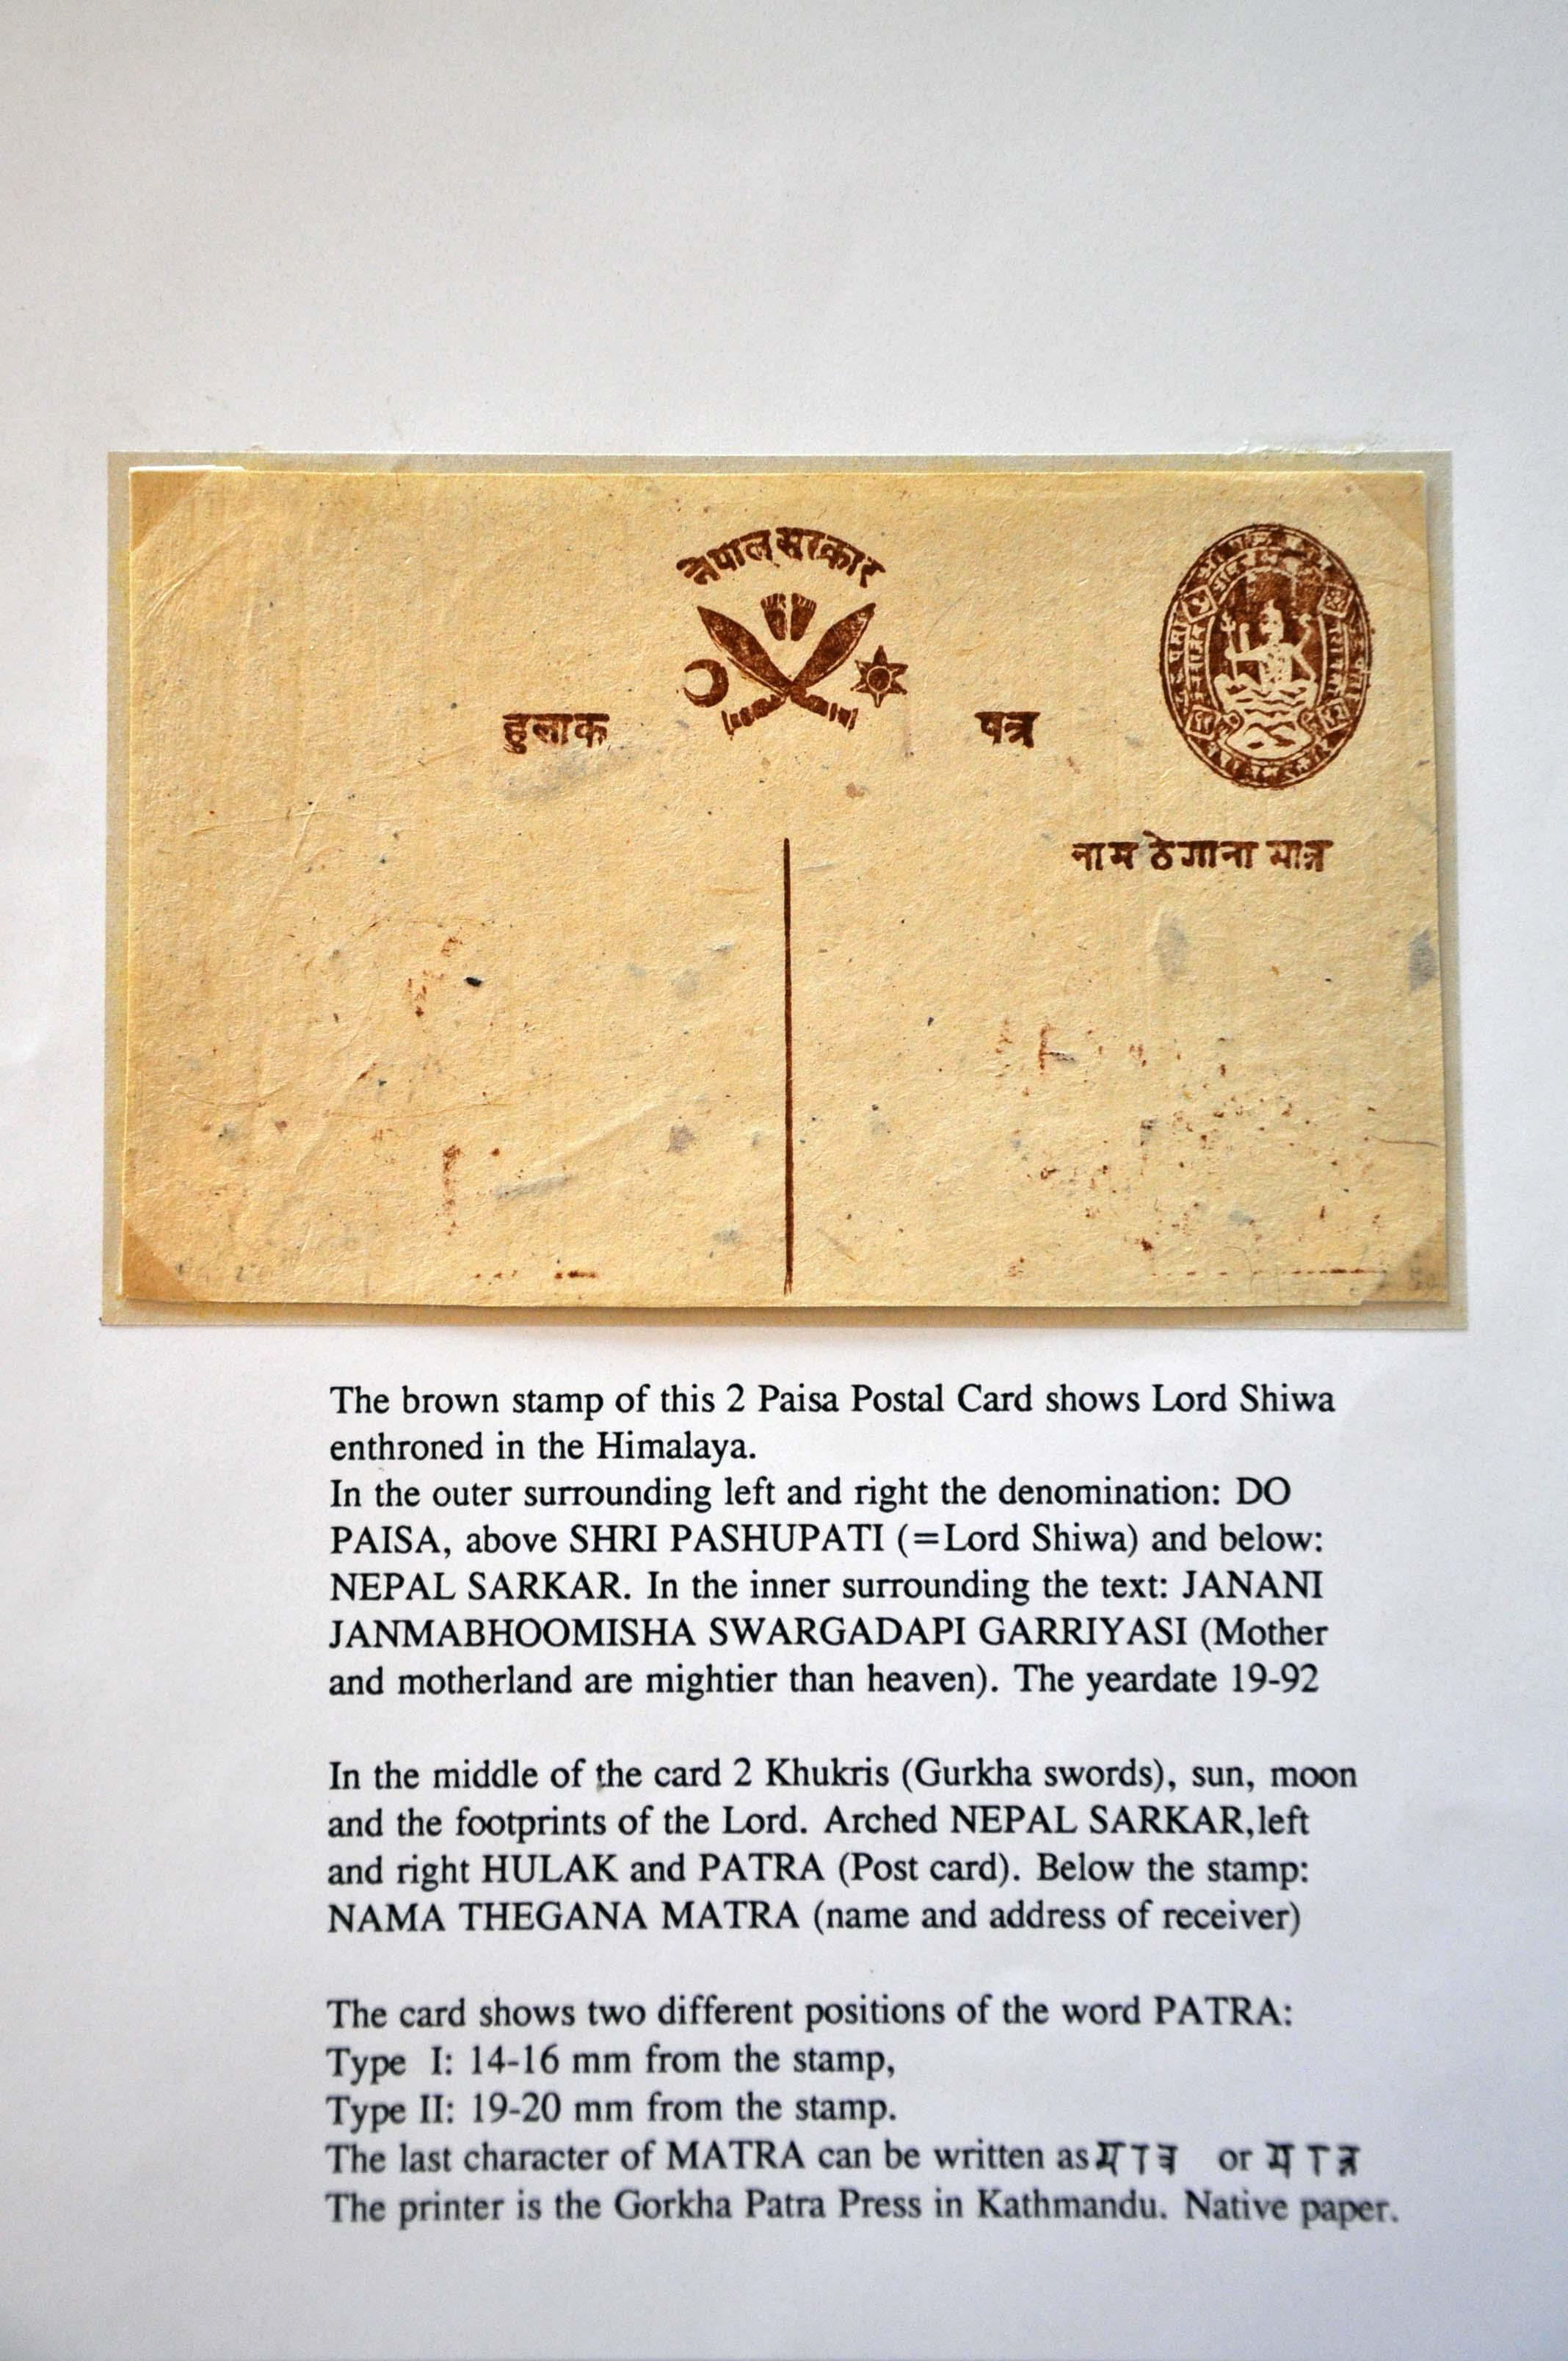 Lot 64 - Great Britain and former colonies Nepal -  Corinphila Veilingen Auction 245-246 Day 1 - Nepal - The Dick van der Wateren Collection, Foreign countries - Single lots, Picture postcards